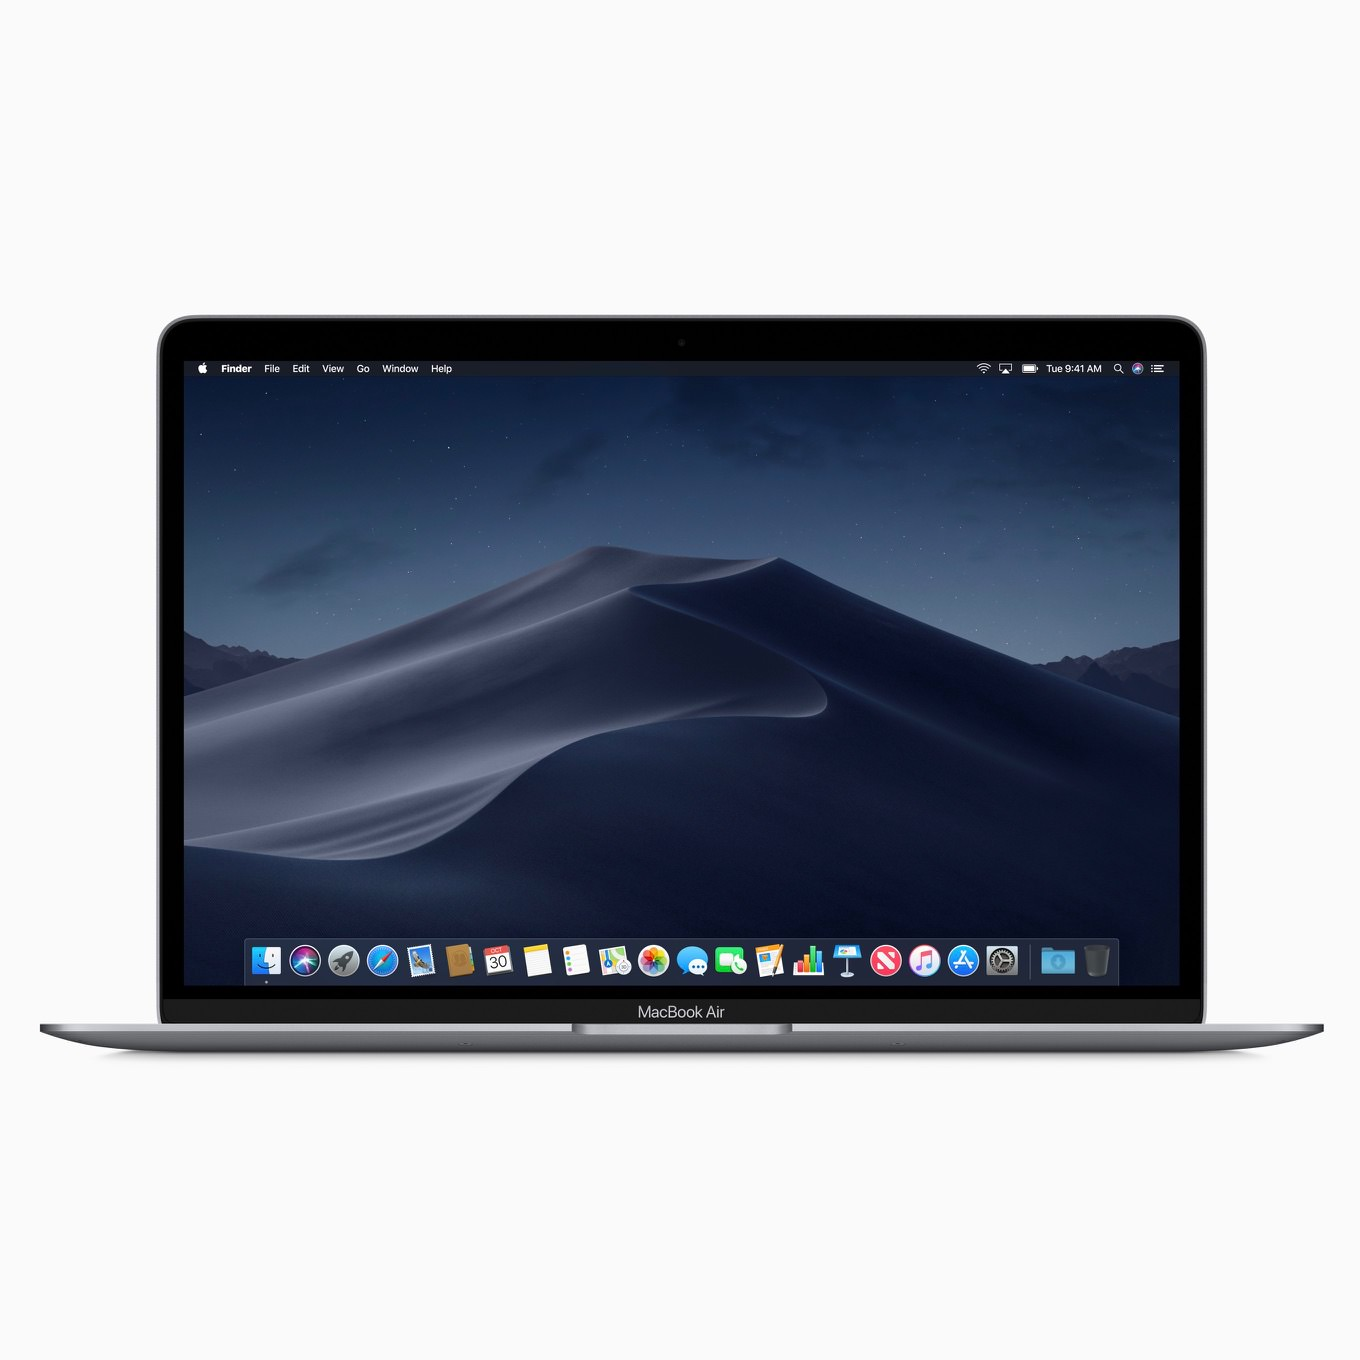 MacBook-Air-macOS-Mojave-10302018-1